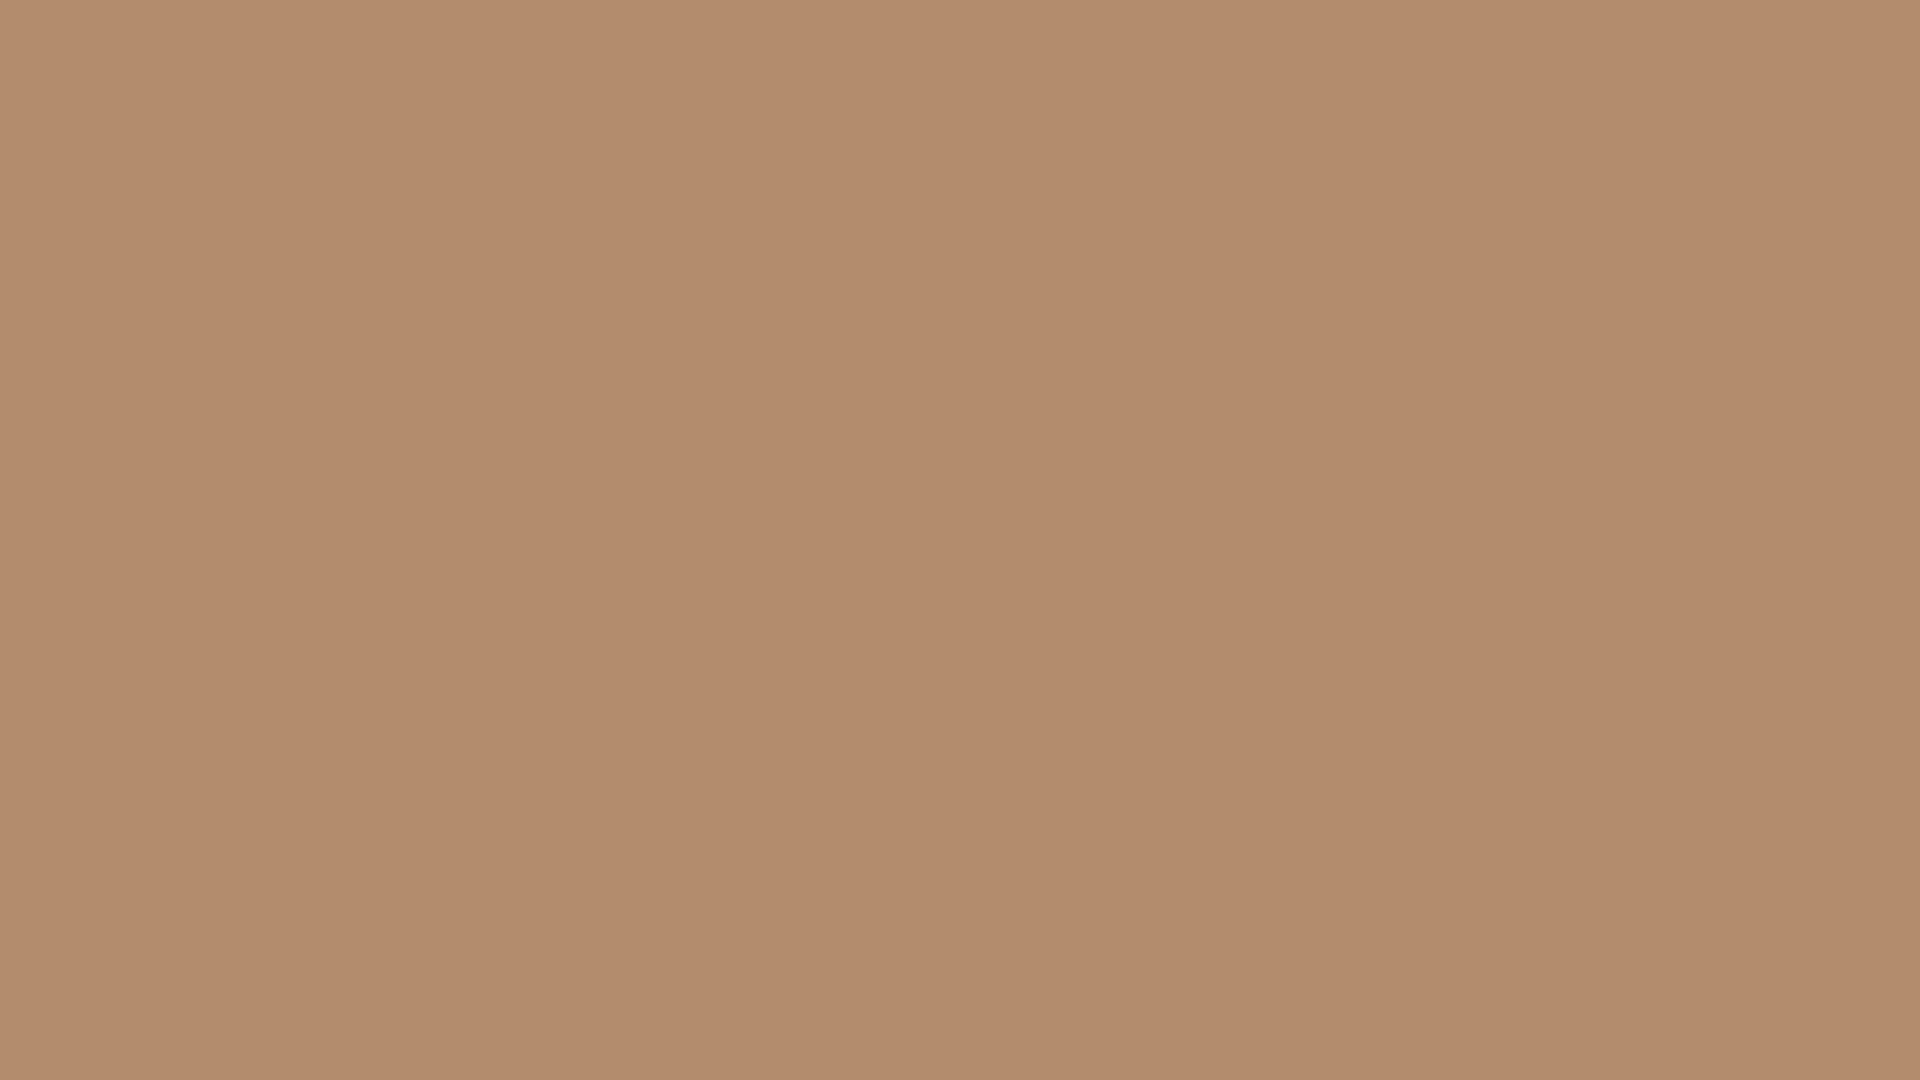 1920x1080 Light Taupe Solid Color Background